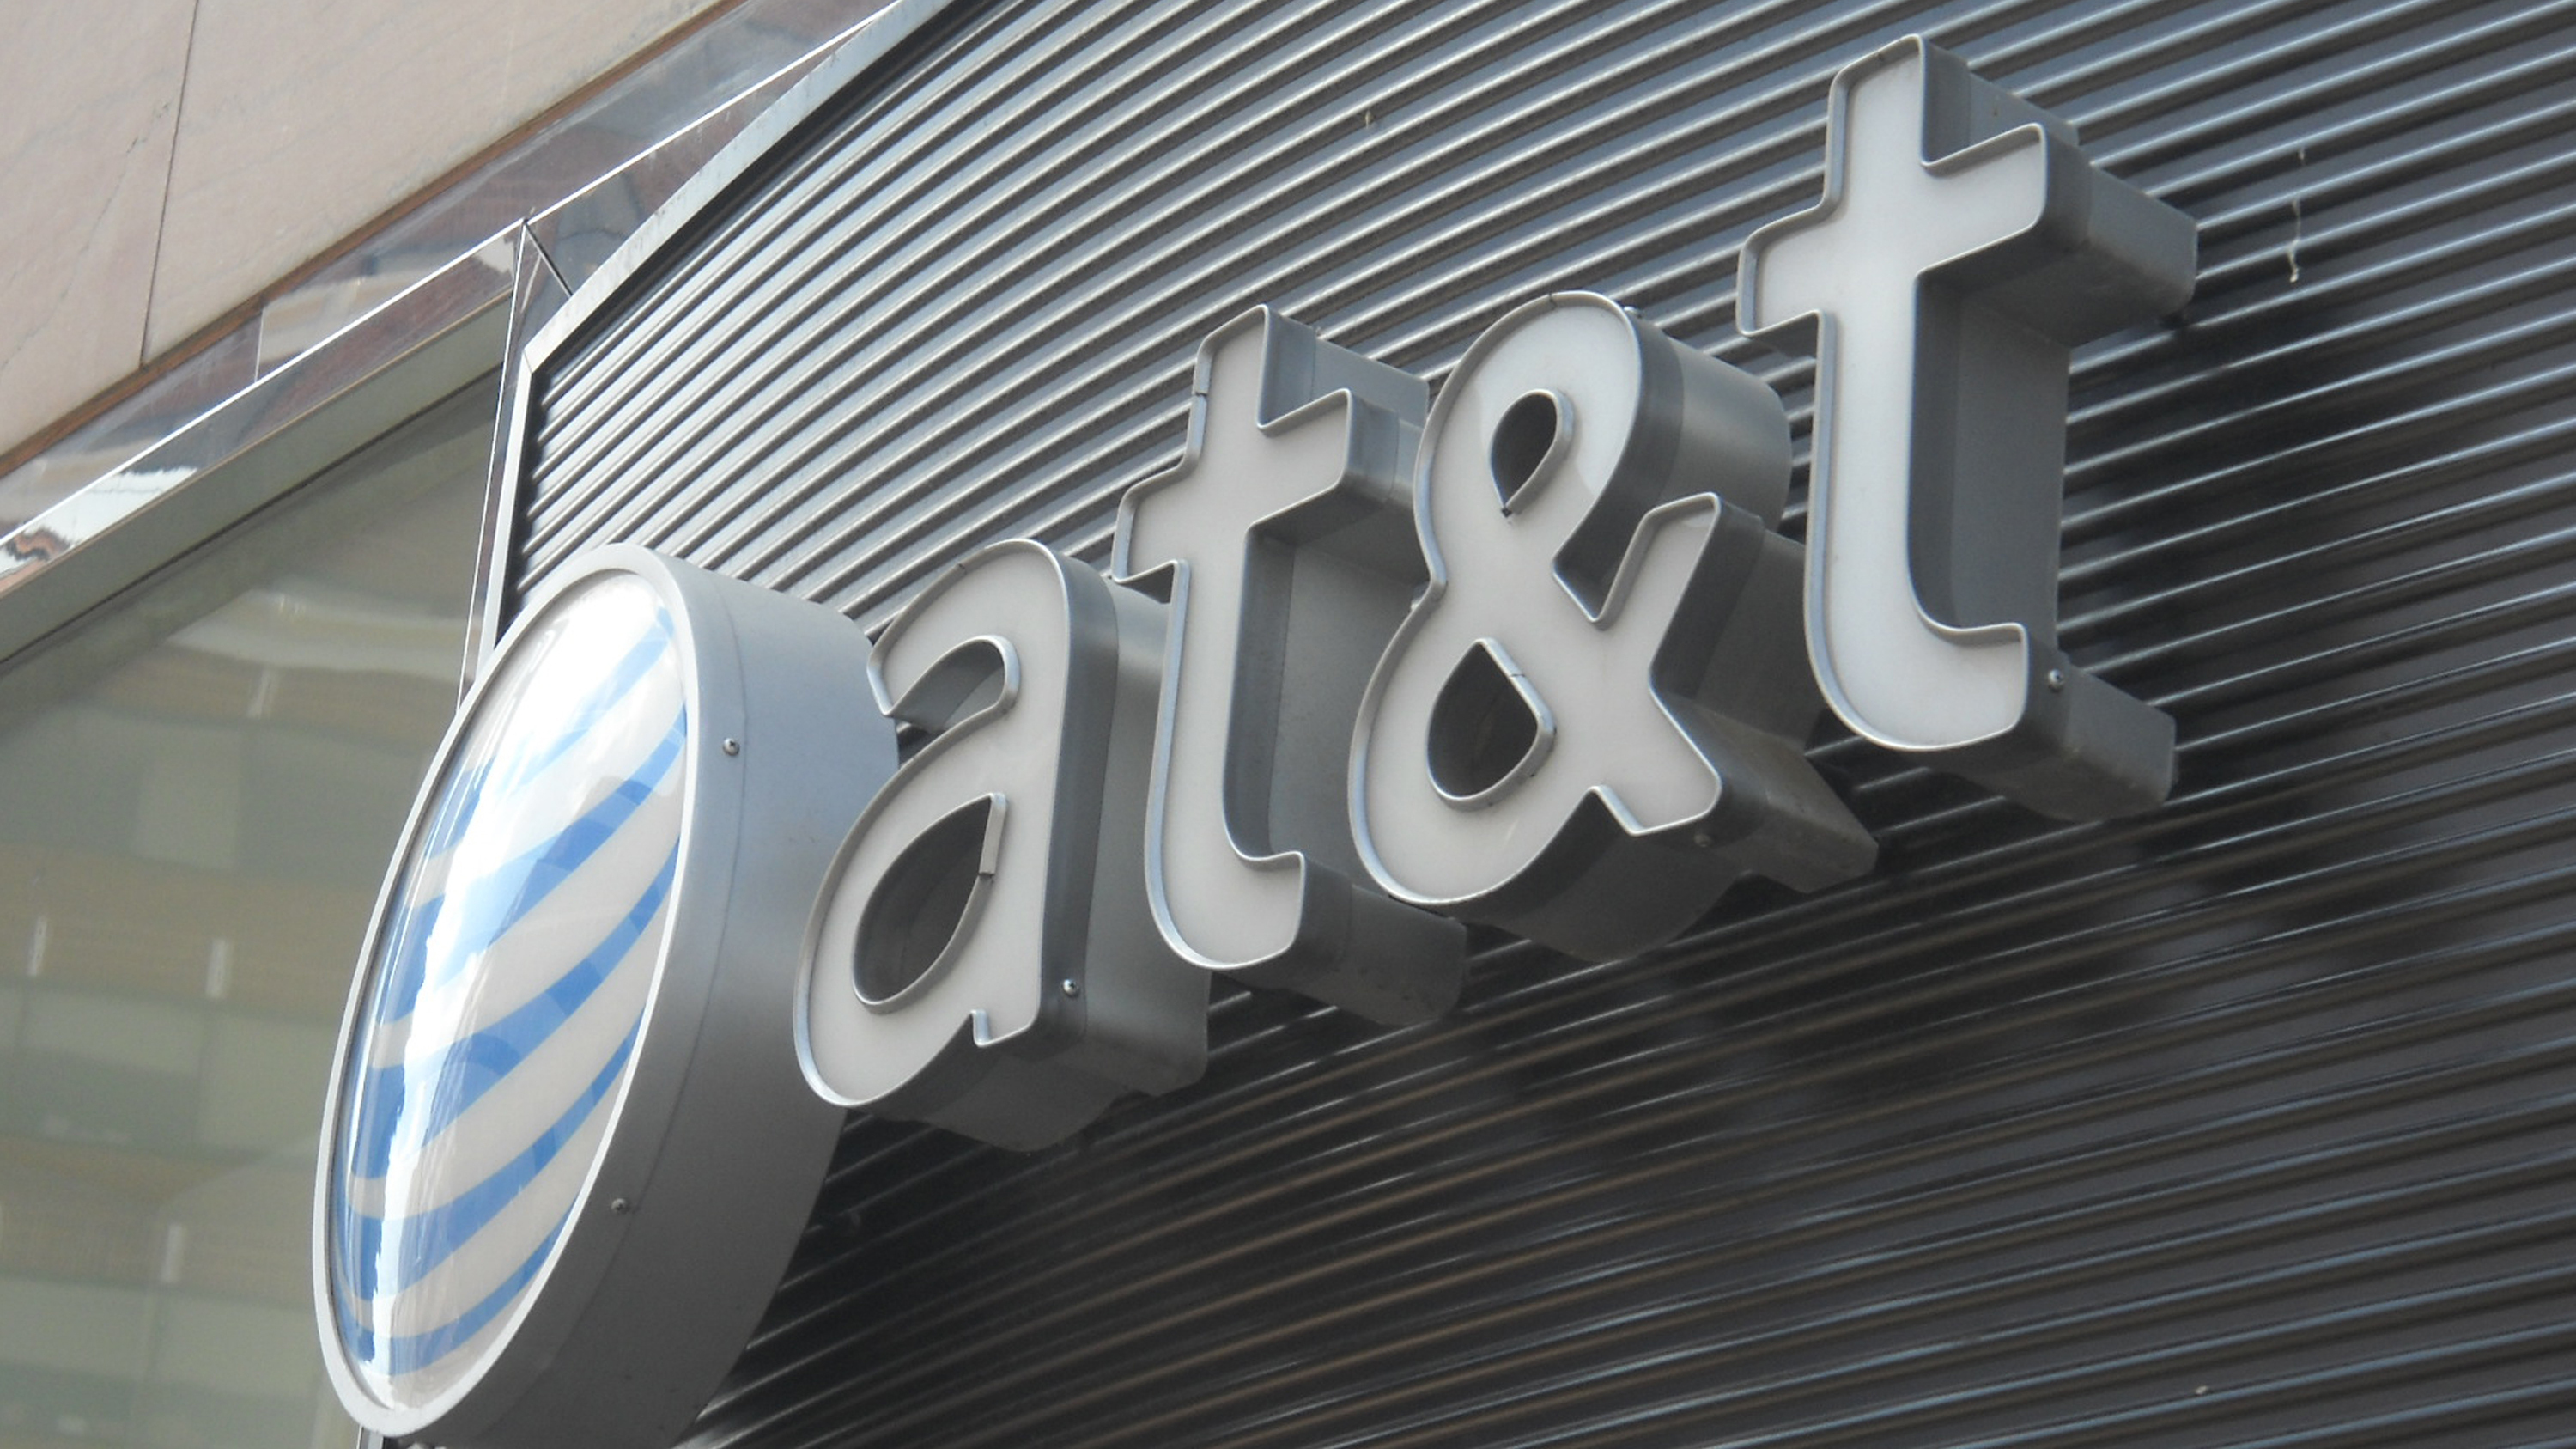 The Trump administration is filing a lawsuit to block AT&T's purchase of a Time Warner an $85 billion deal. Time Warner is the parent company of CNN a frequent target of President Trump's ire at the media